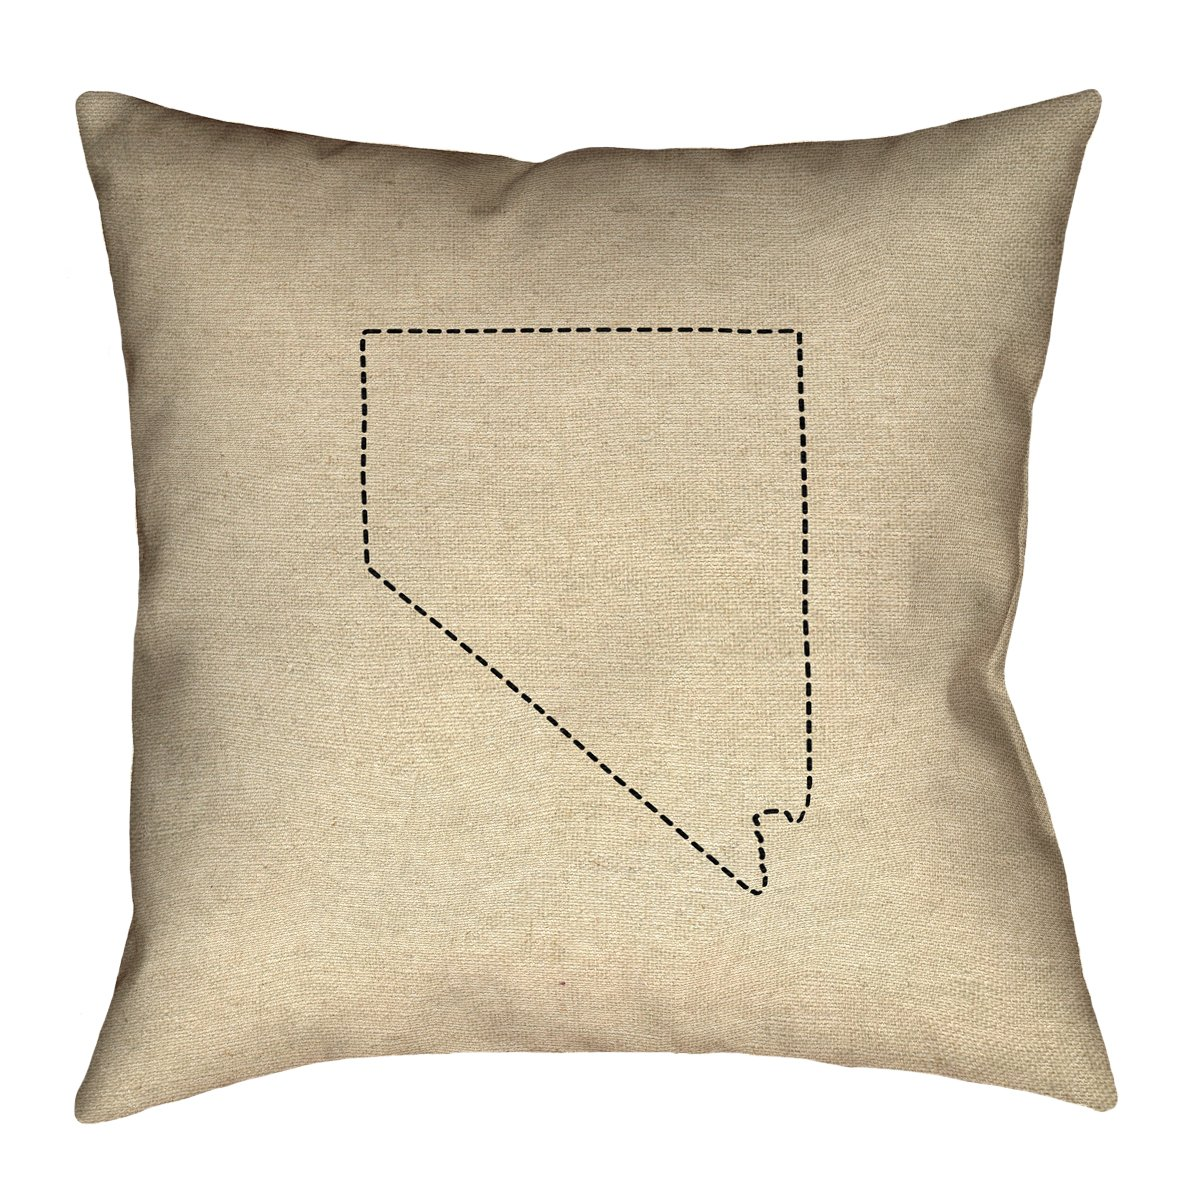 Double Sided Print with Concealed Zipper /& Insert ArtVerse Katelyn Smith Nevada Outline 14 x 14 Pillow-Faux Linen Updated Fabric